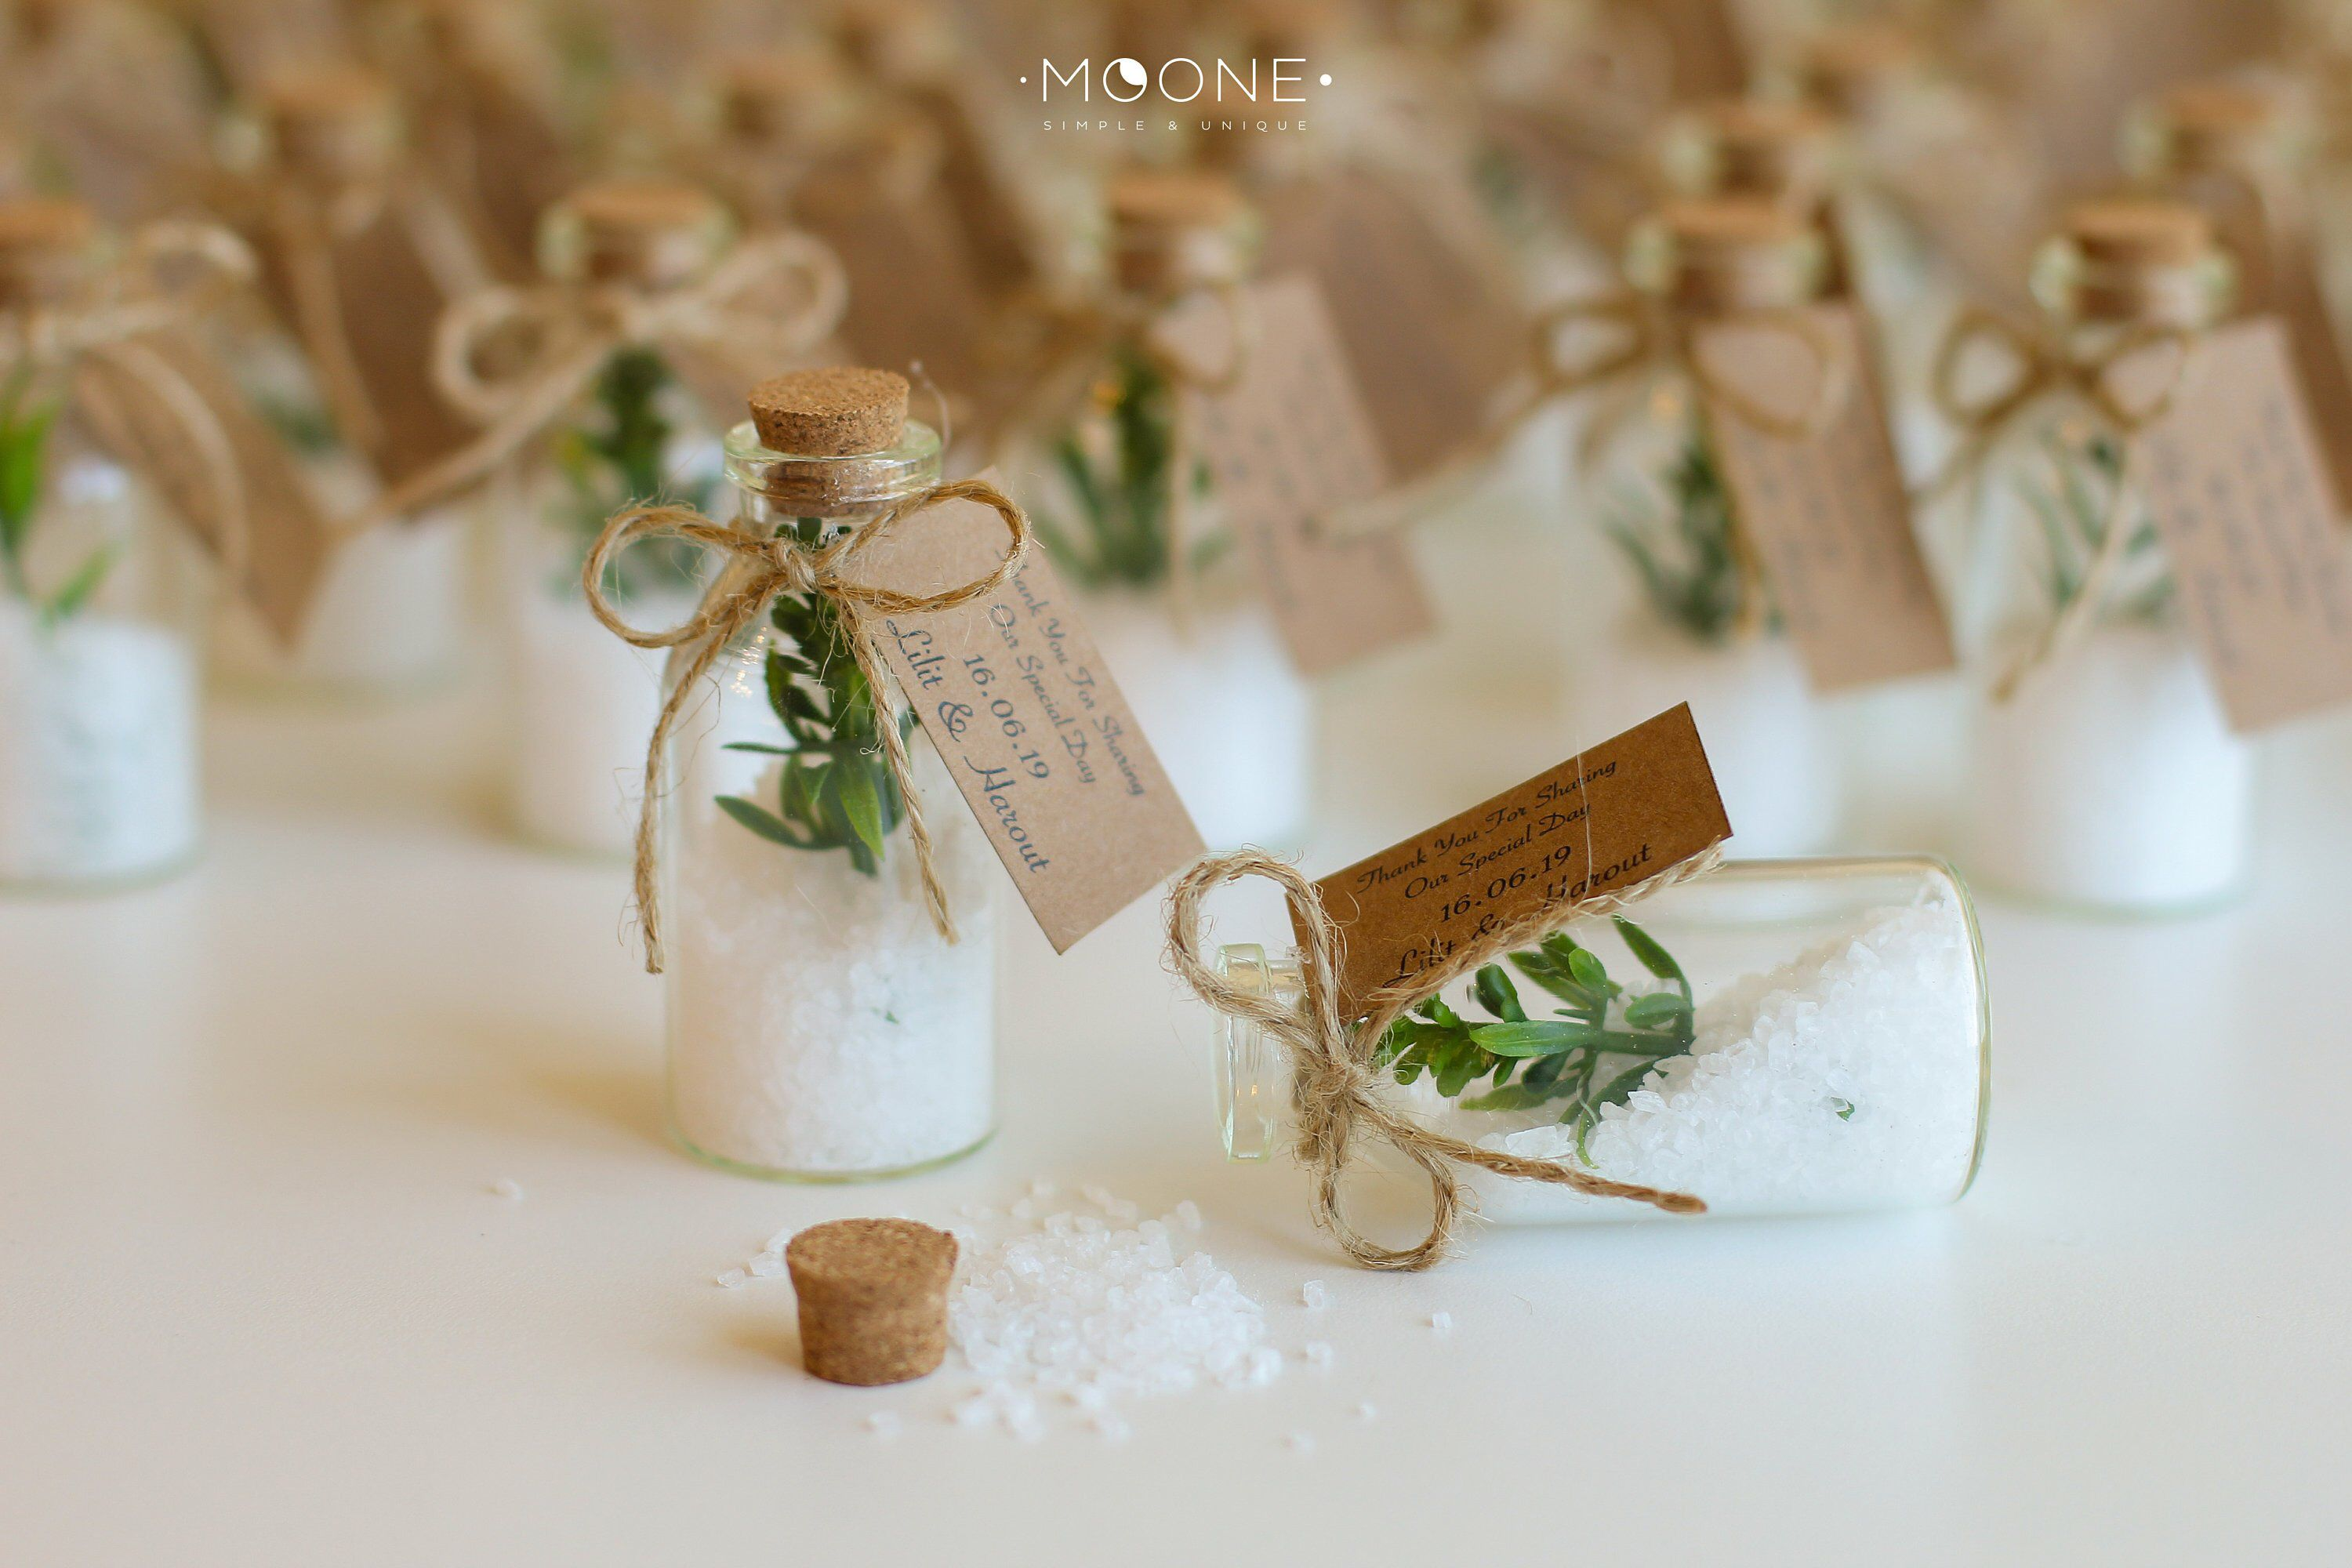 10 Sea Salt Wedding Gifts Beach Wedding Favors Beach Wedding Etsy Beach Wedding Gifts Wedding Gifts For Guests Beach Wedding Guest Gifts